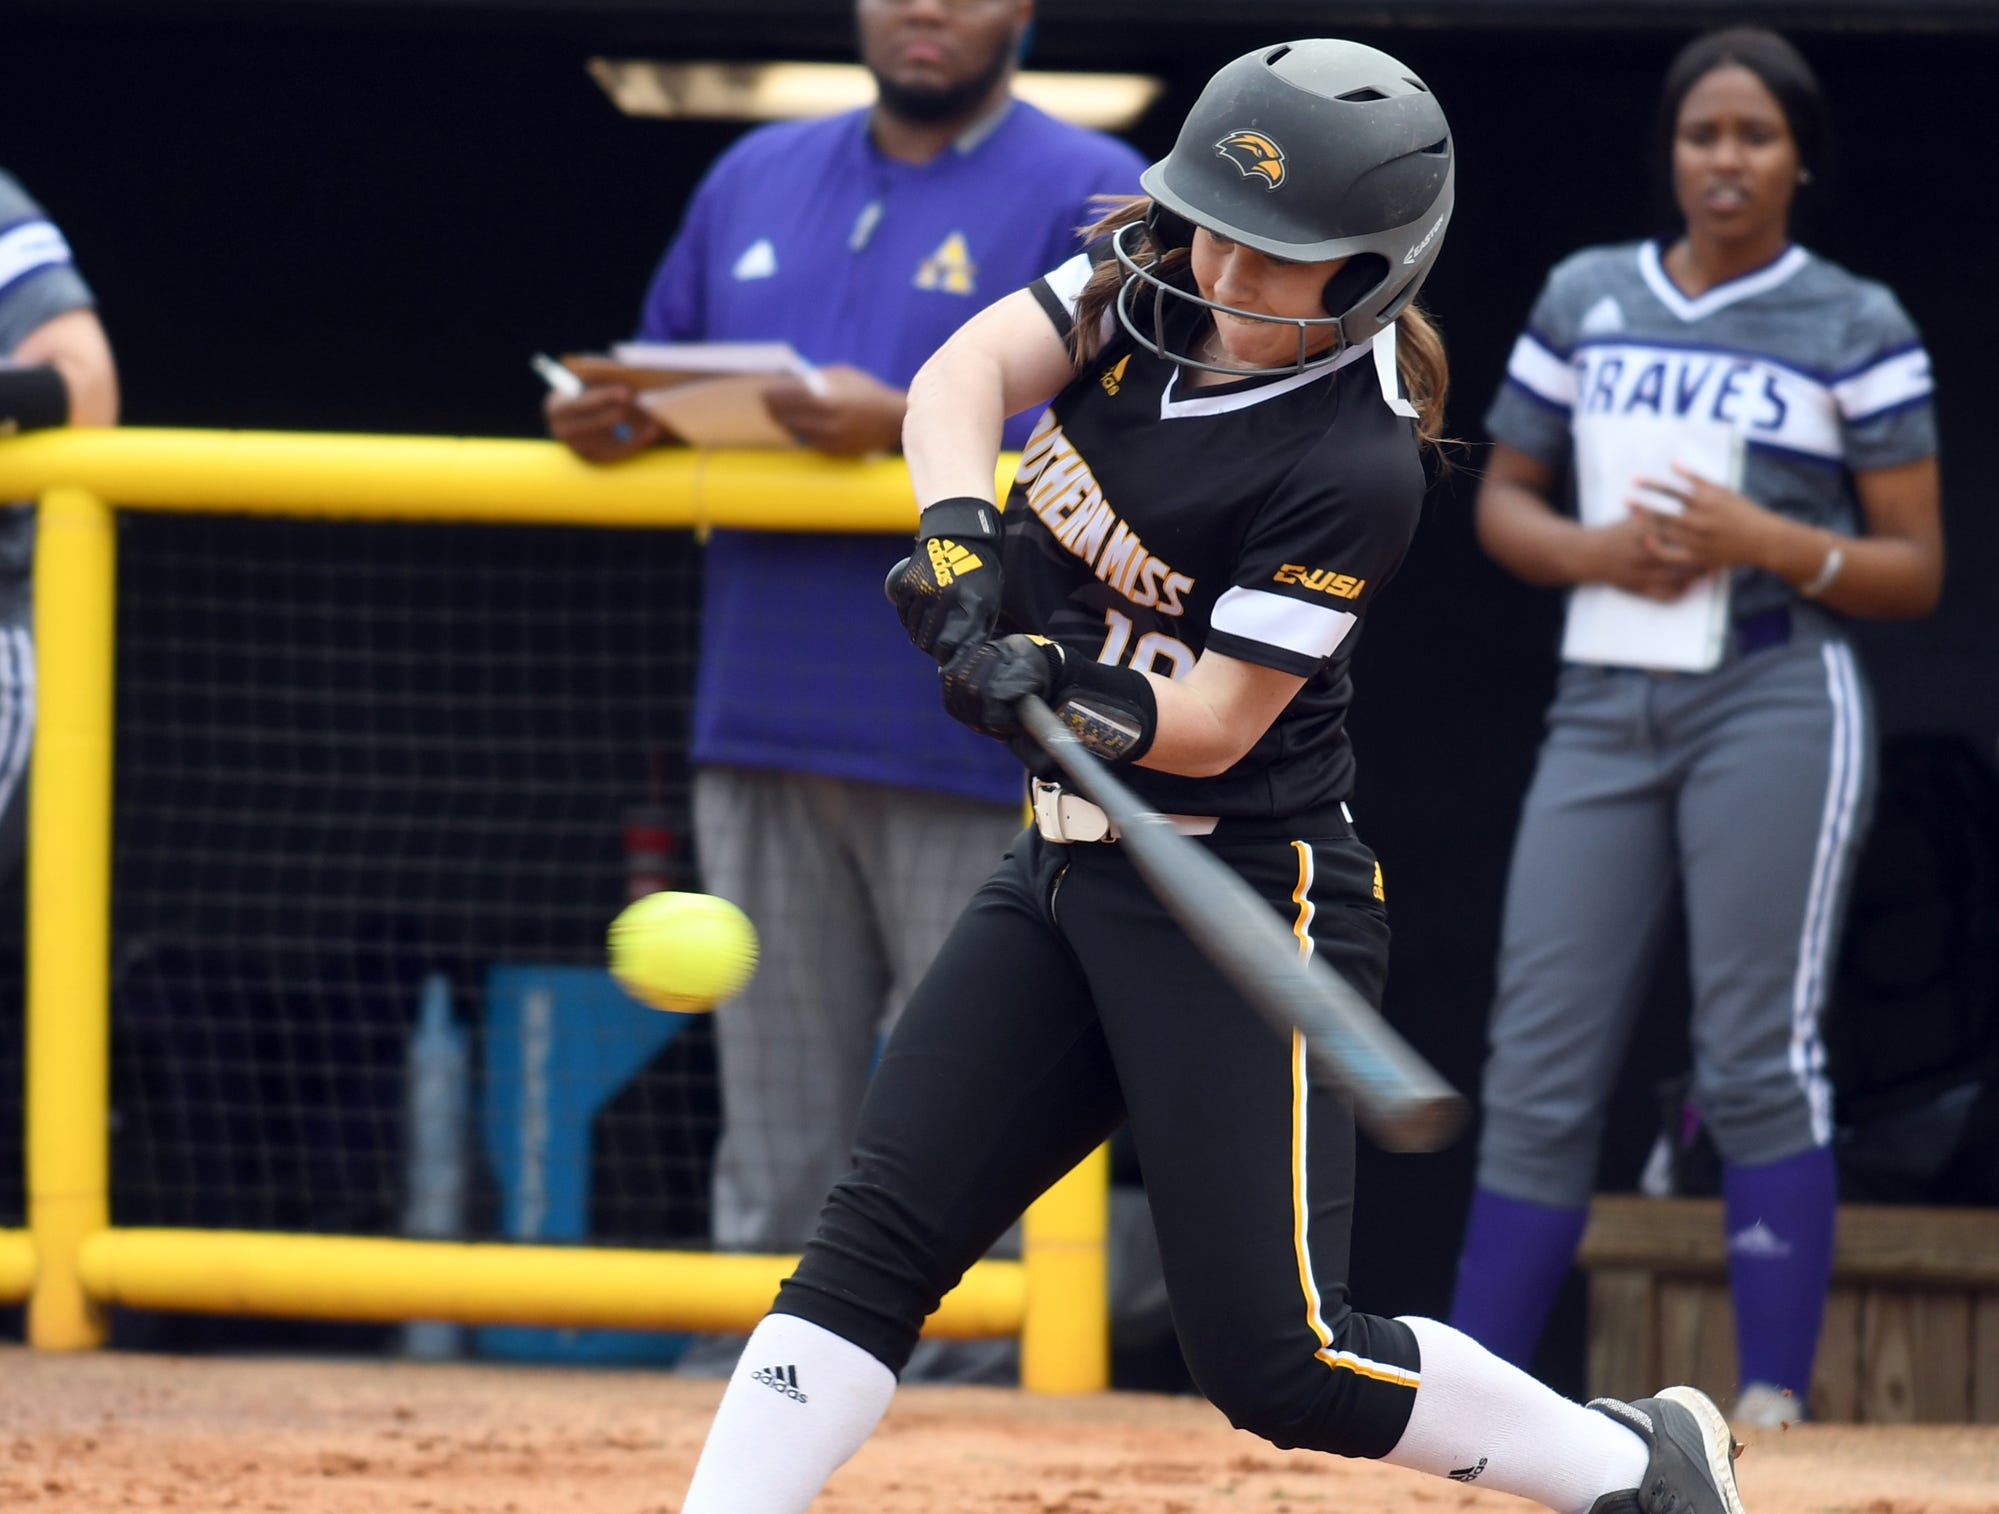 Southern Miss' Madison Rayner swings for the ball in a game against Alcorn on Tuesday, March 12, 2019.